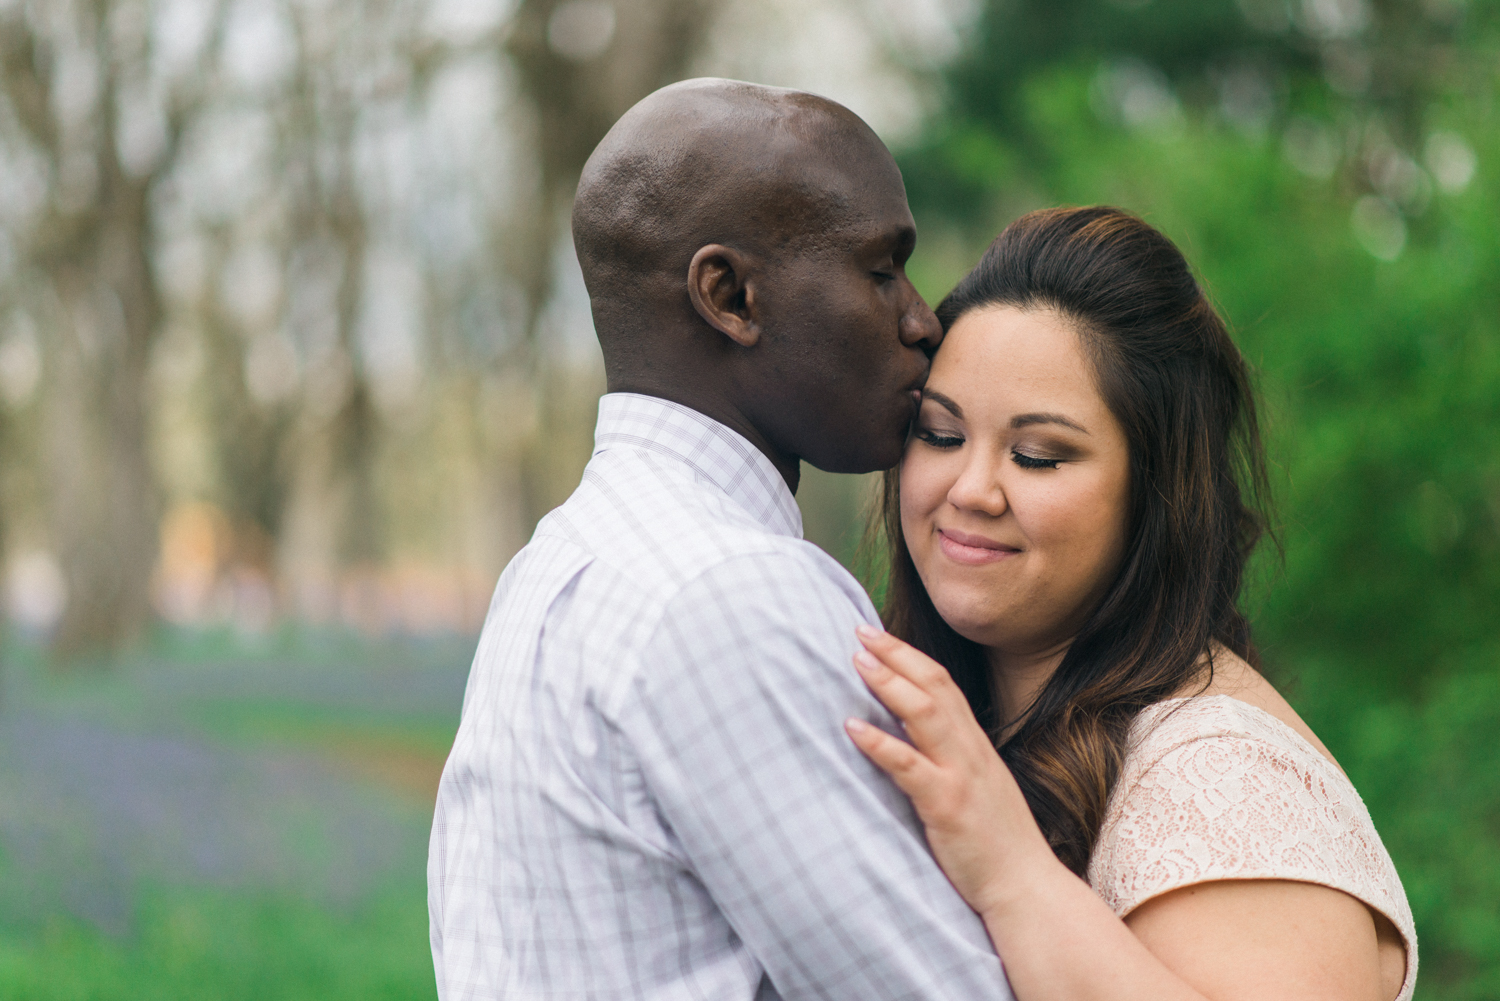 romantic-salem-engagement-photos-bush-park-shelley-marie-photo-21